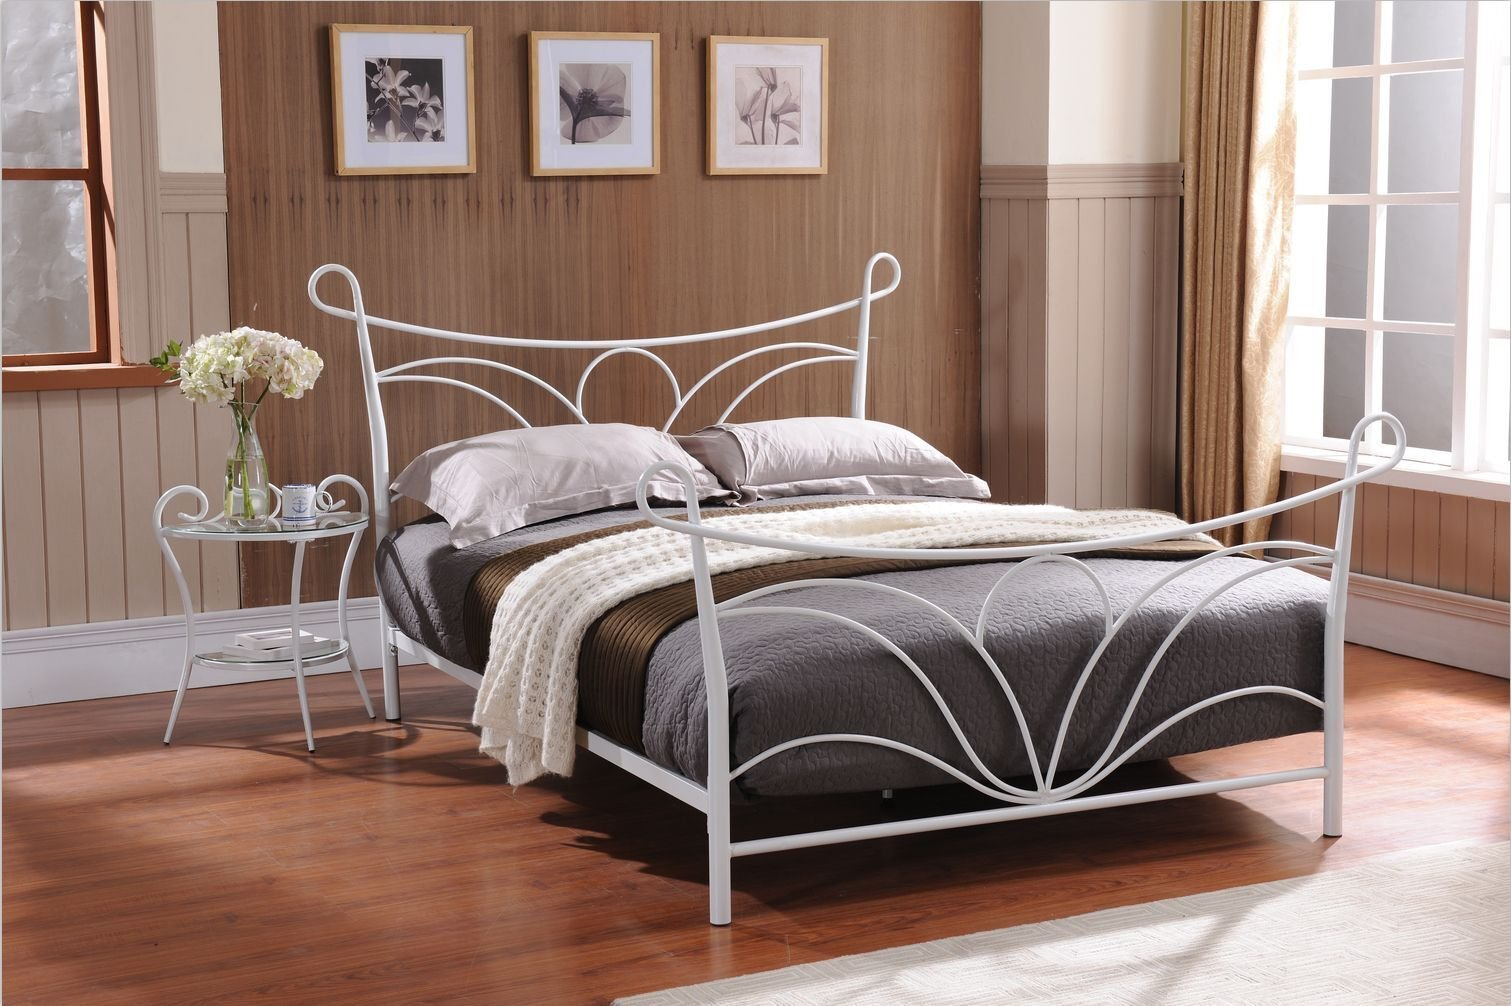 Hammer White Finish Metal Bed, Headboard Footboard Rails & Slats (Twin) - Hammer White Finish Metal Twin Size Bed, Includes Headboard, Footboard, Rails & Metal Slats. Made of metal tubes in white finish, with 7 slats and 2pcs center support legs, No need for a box spring or separate bed frame. - bedroom-furniture, bedroom, bed-frames - 71xmbnTou8L -